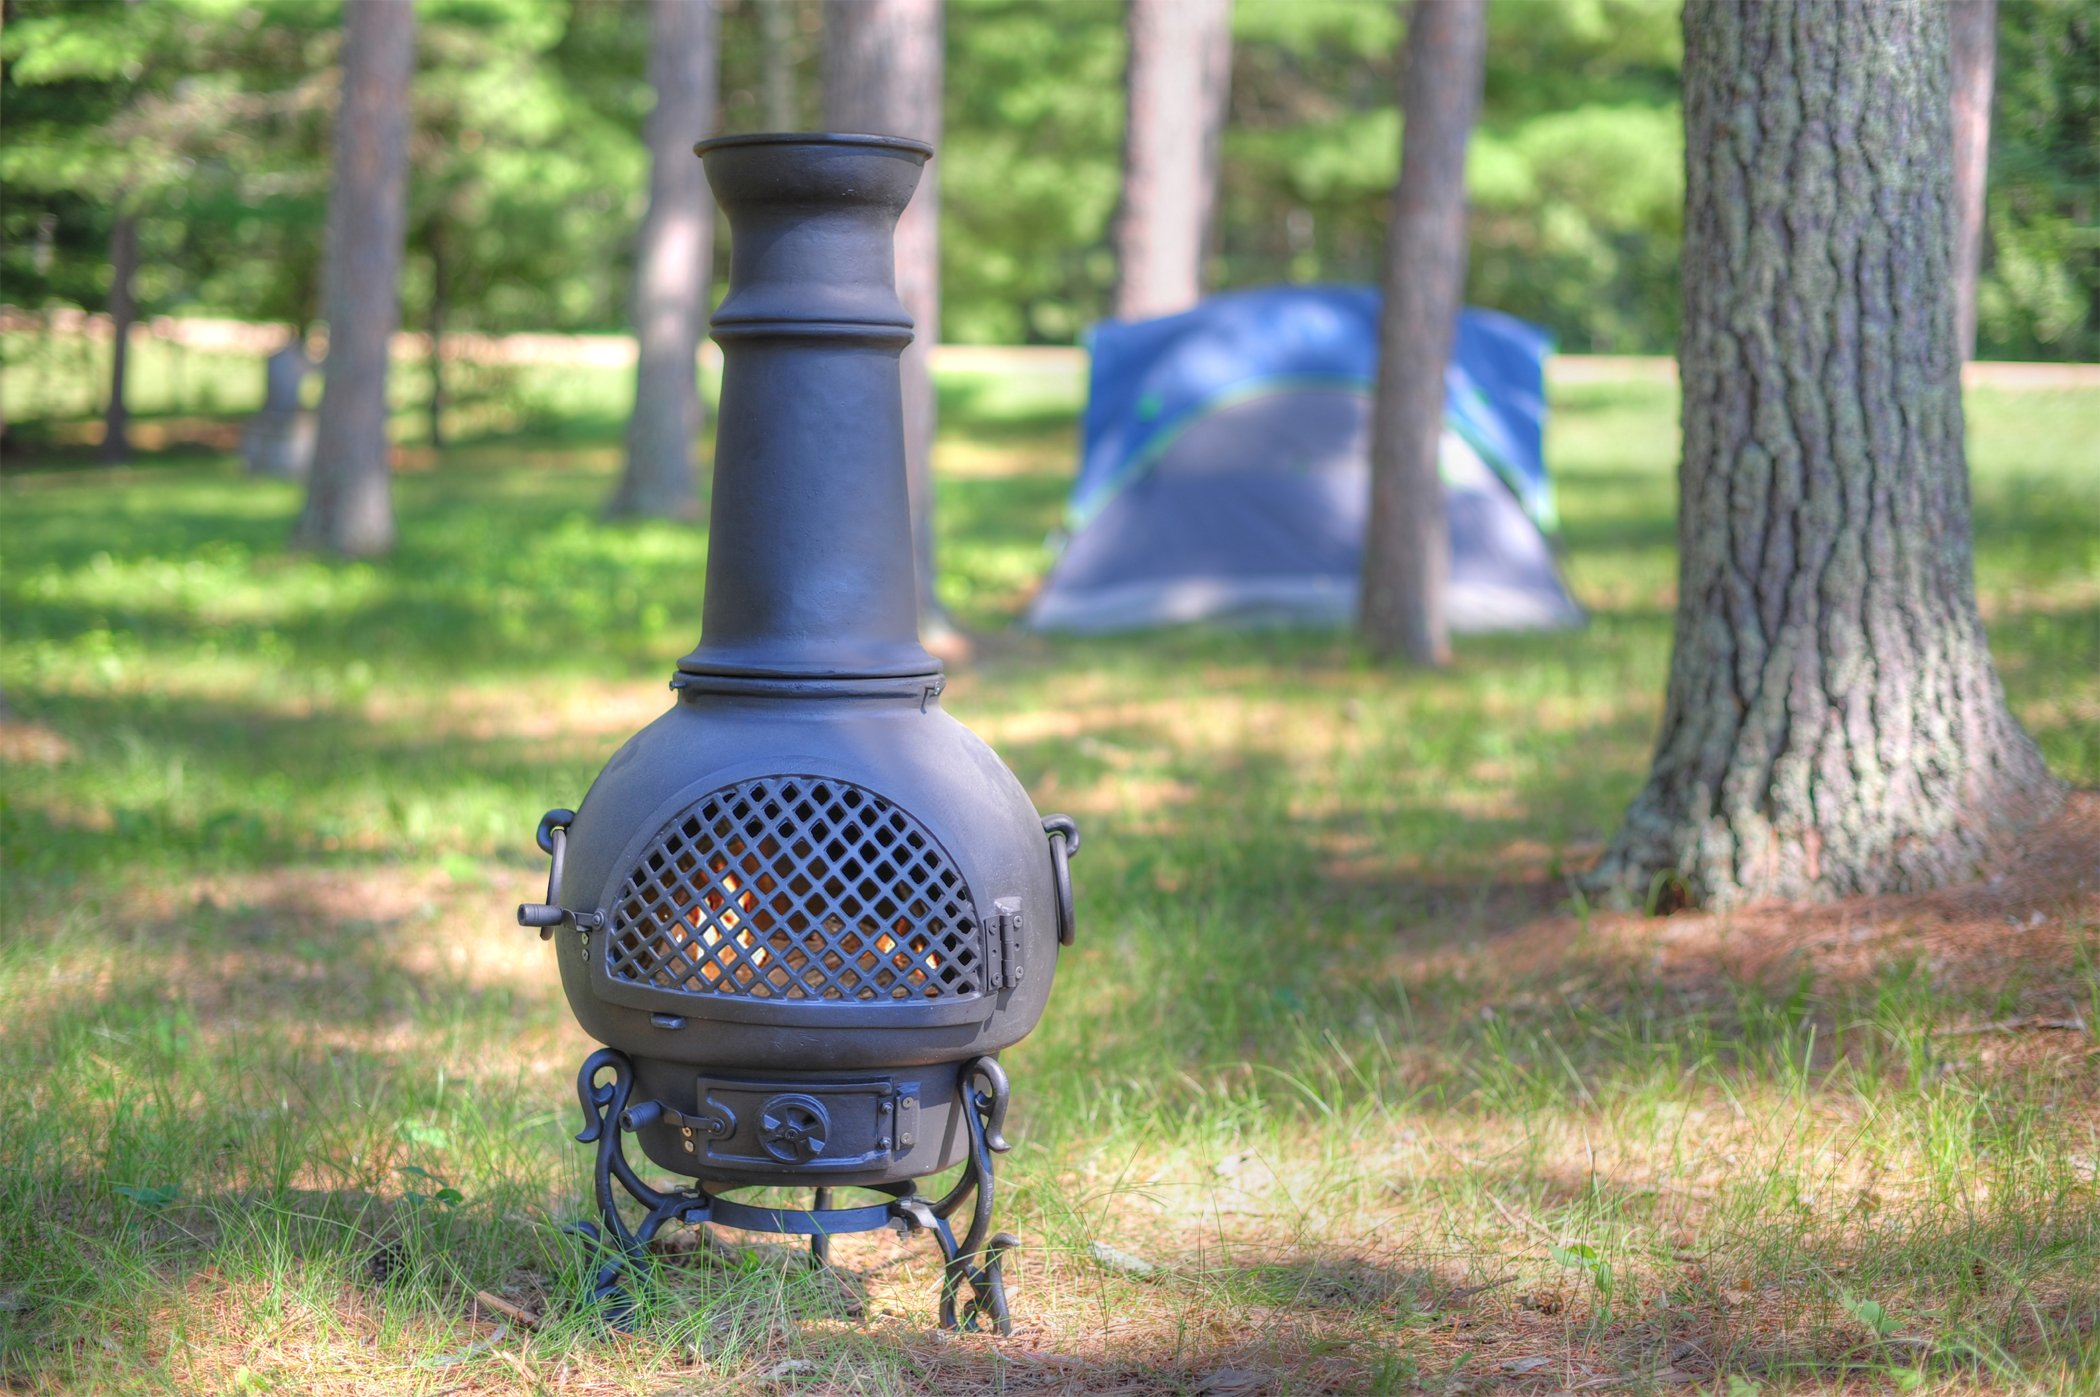 The Blue Rooster Co. Gatsby Style Cast Aluminum Wood Burning Chiminea in Charcoal.